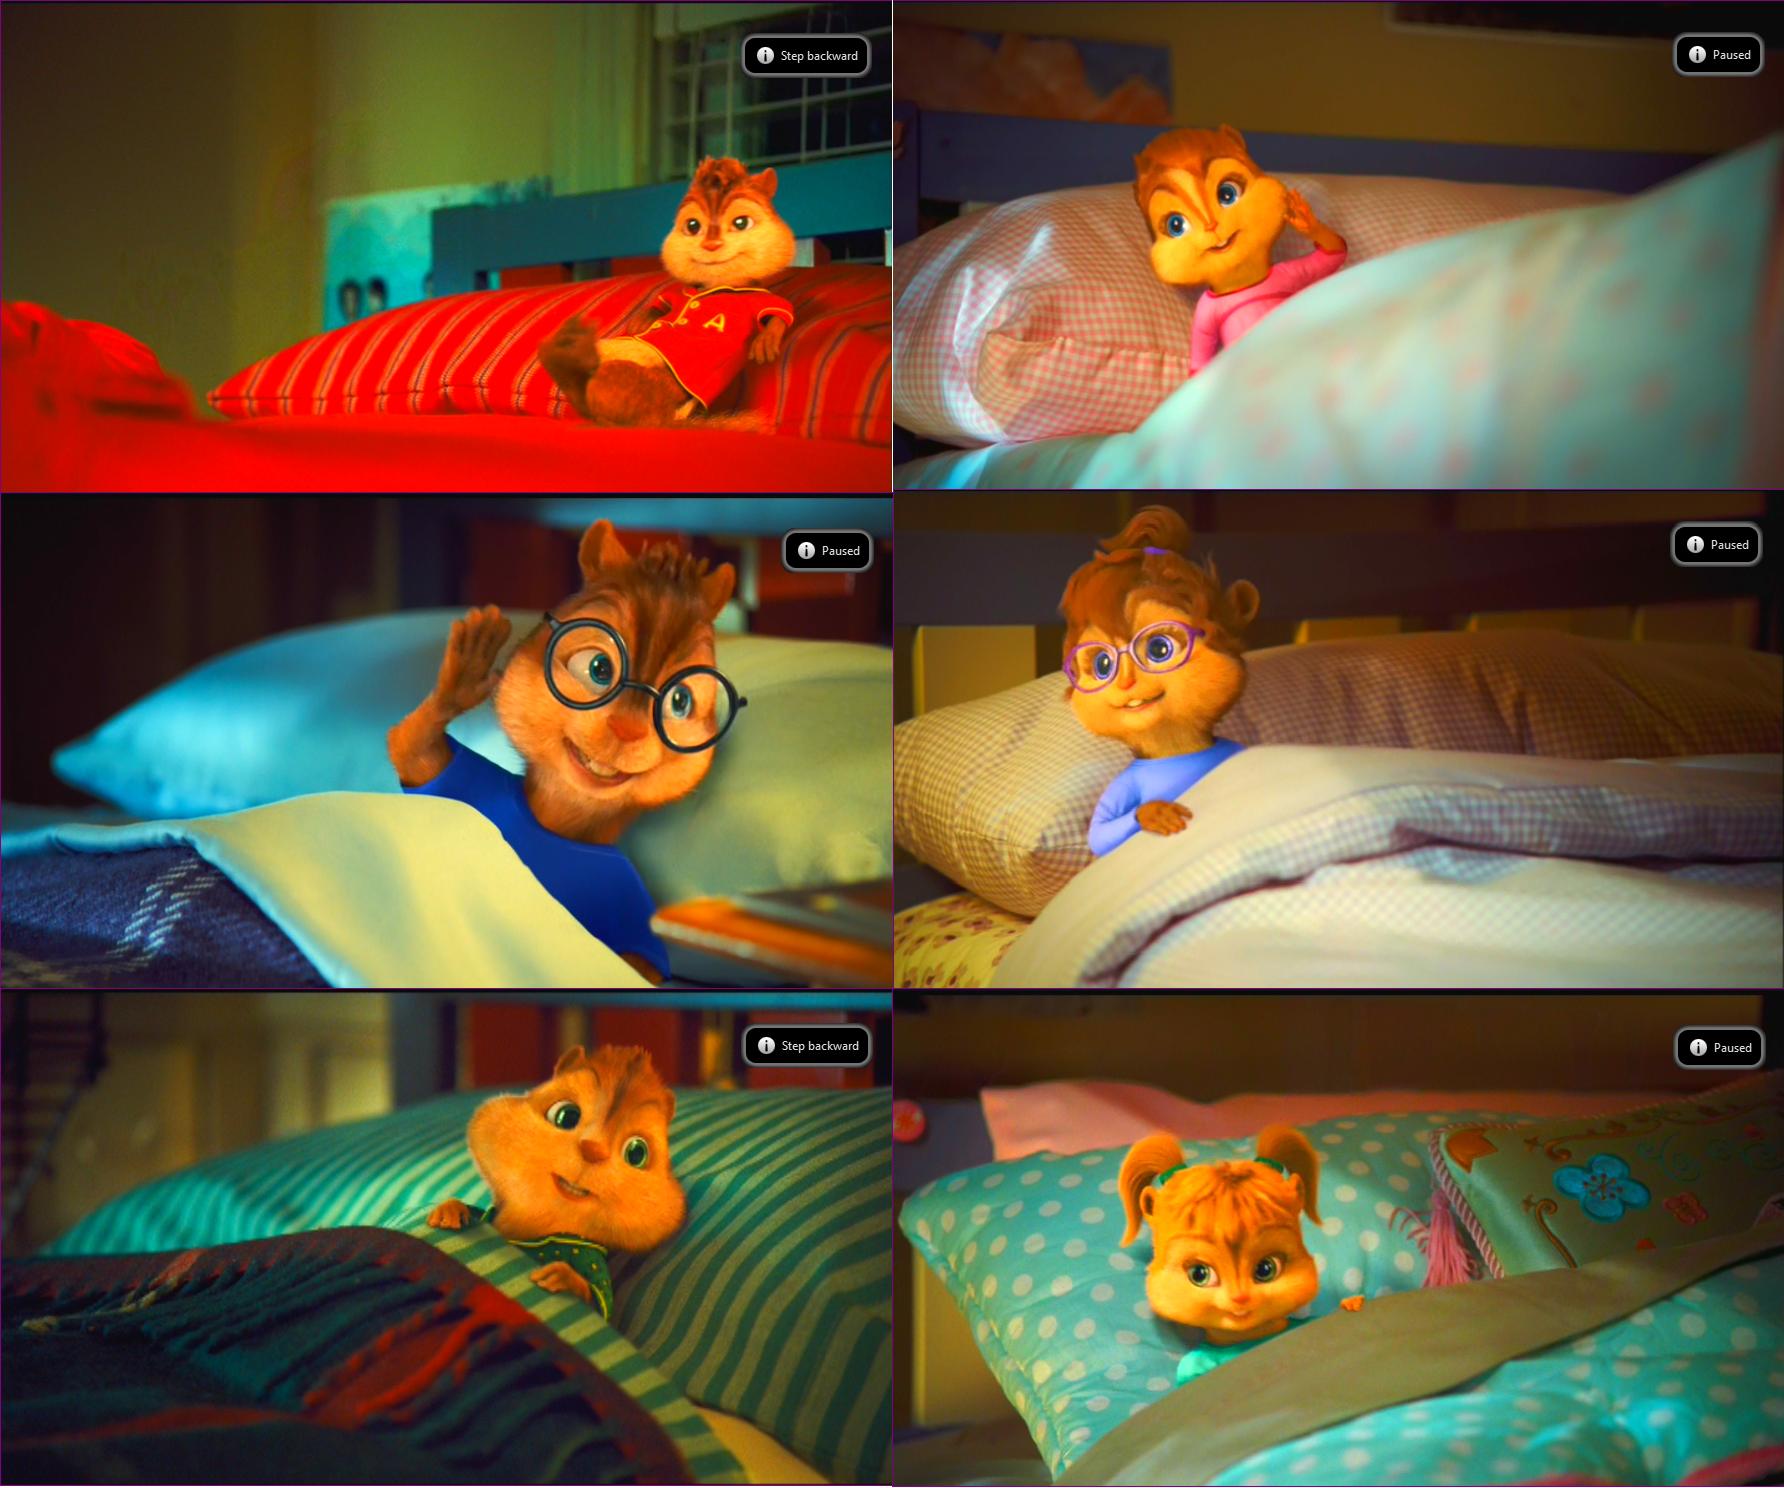 Alvin And The Chipmunks Alvin And Brittany bedtime - alvin and the chipmunks 2 photo (23196478) - fanpop